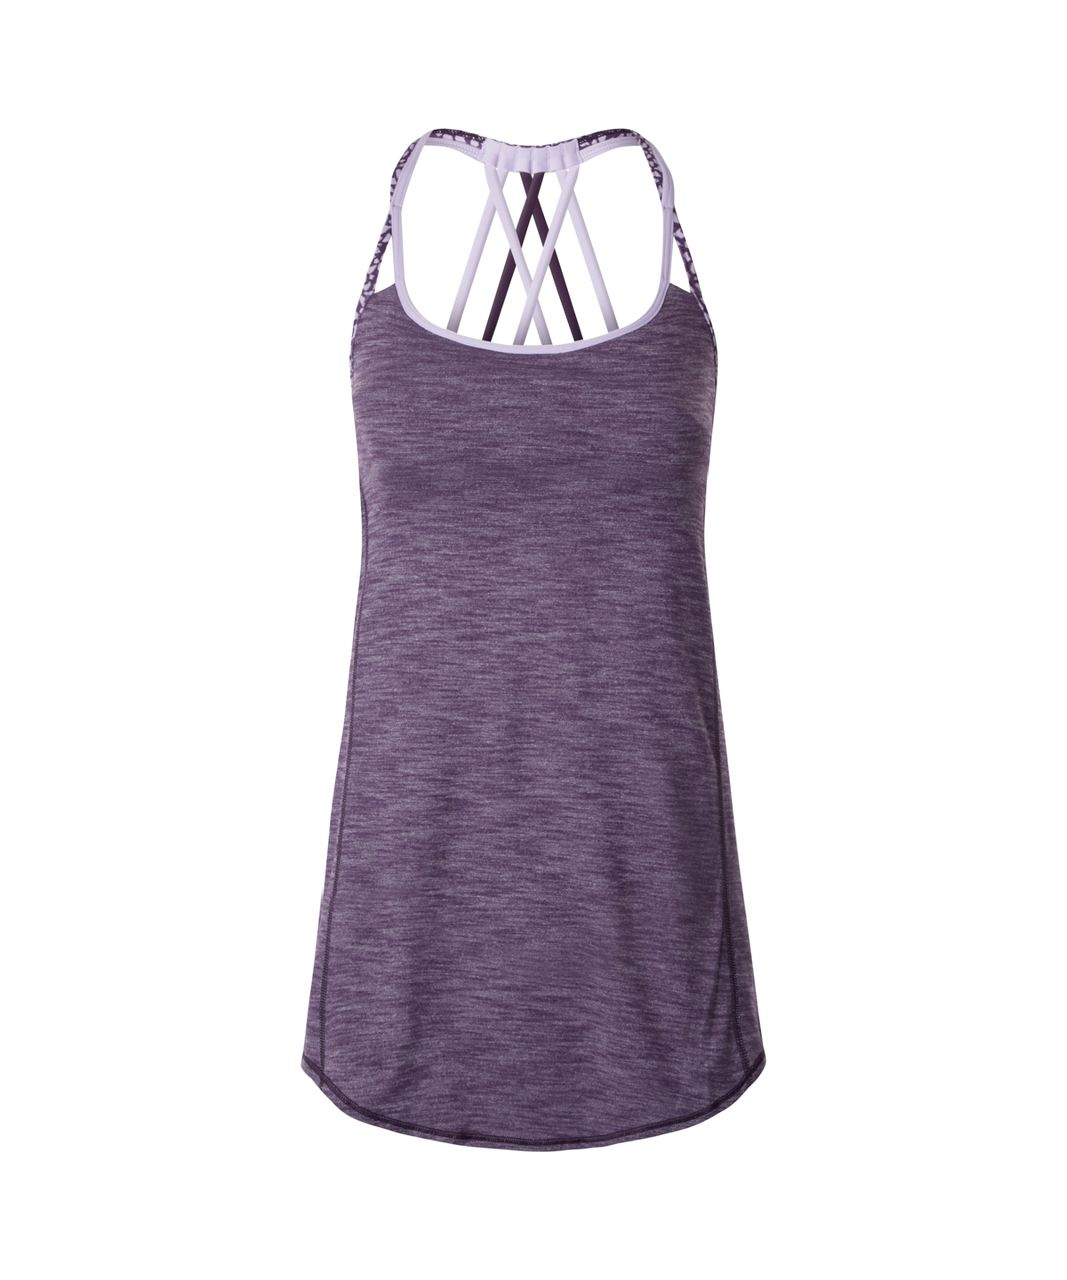 Lululemon Lighten Up Tank - Heathered Deep Zinfandel / Miss Mosaic Lilac Deep Zinfandel / Lilac